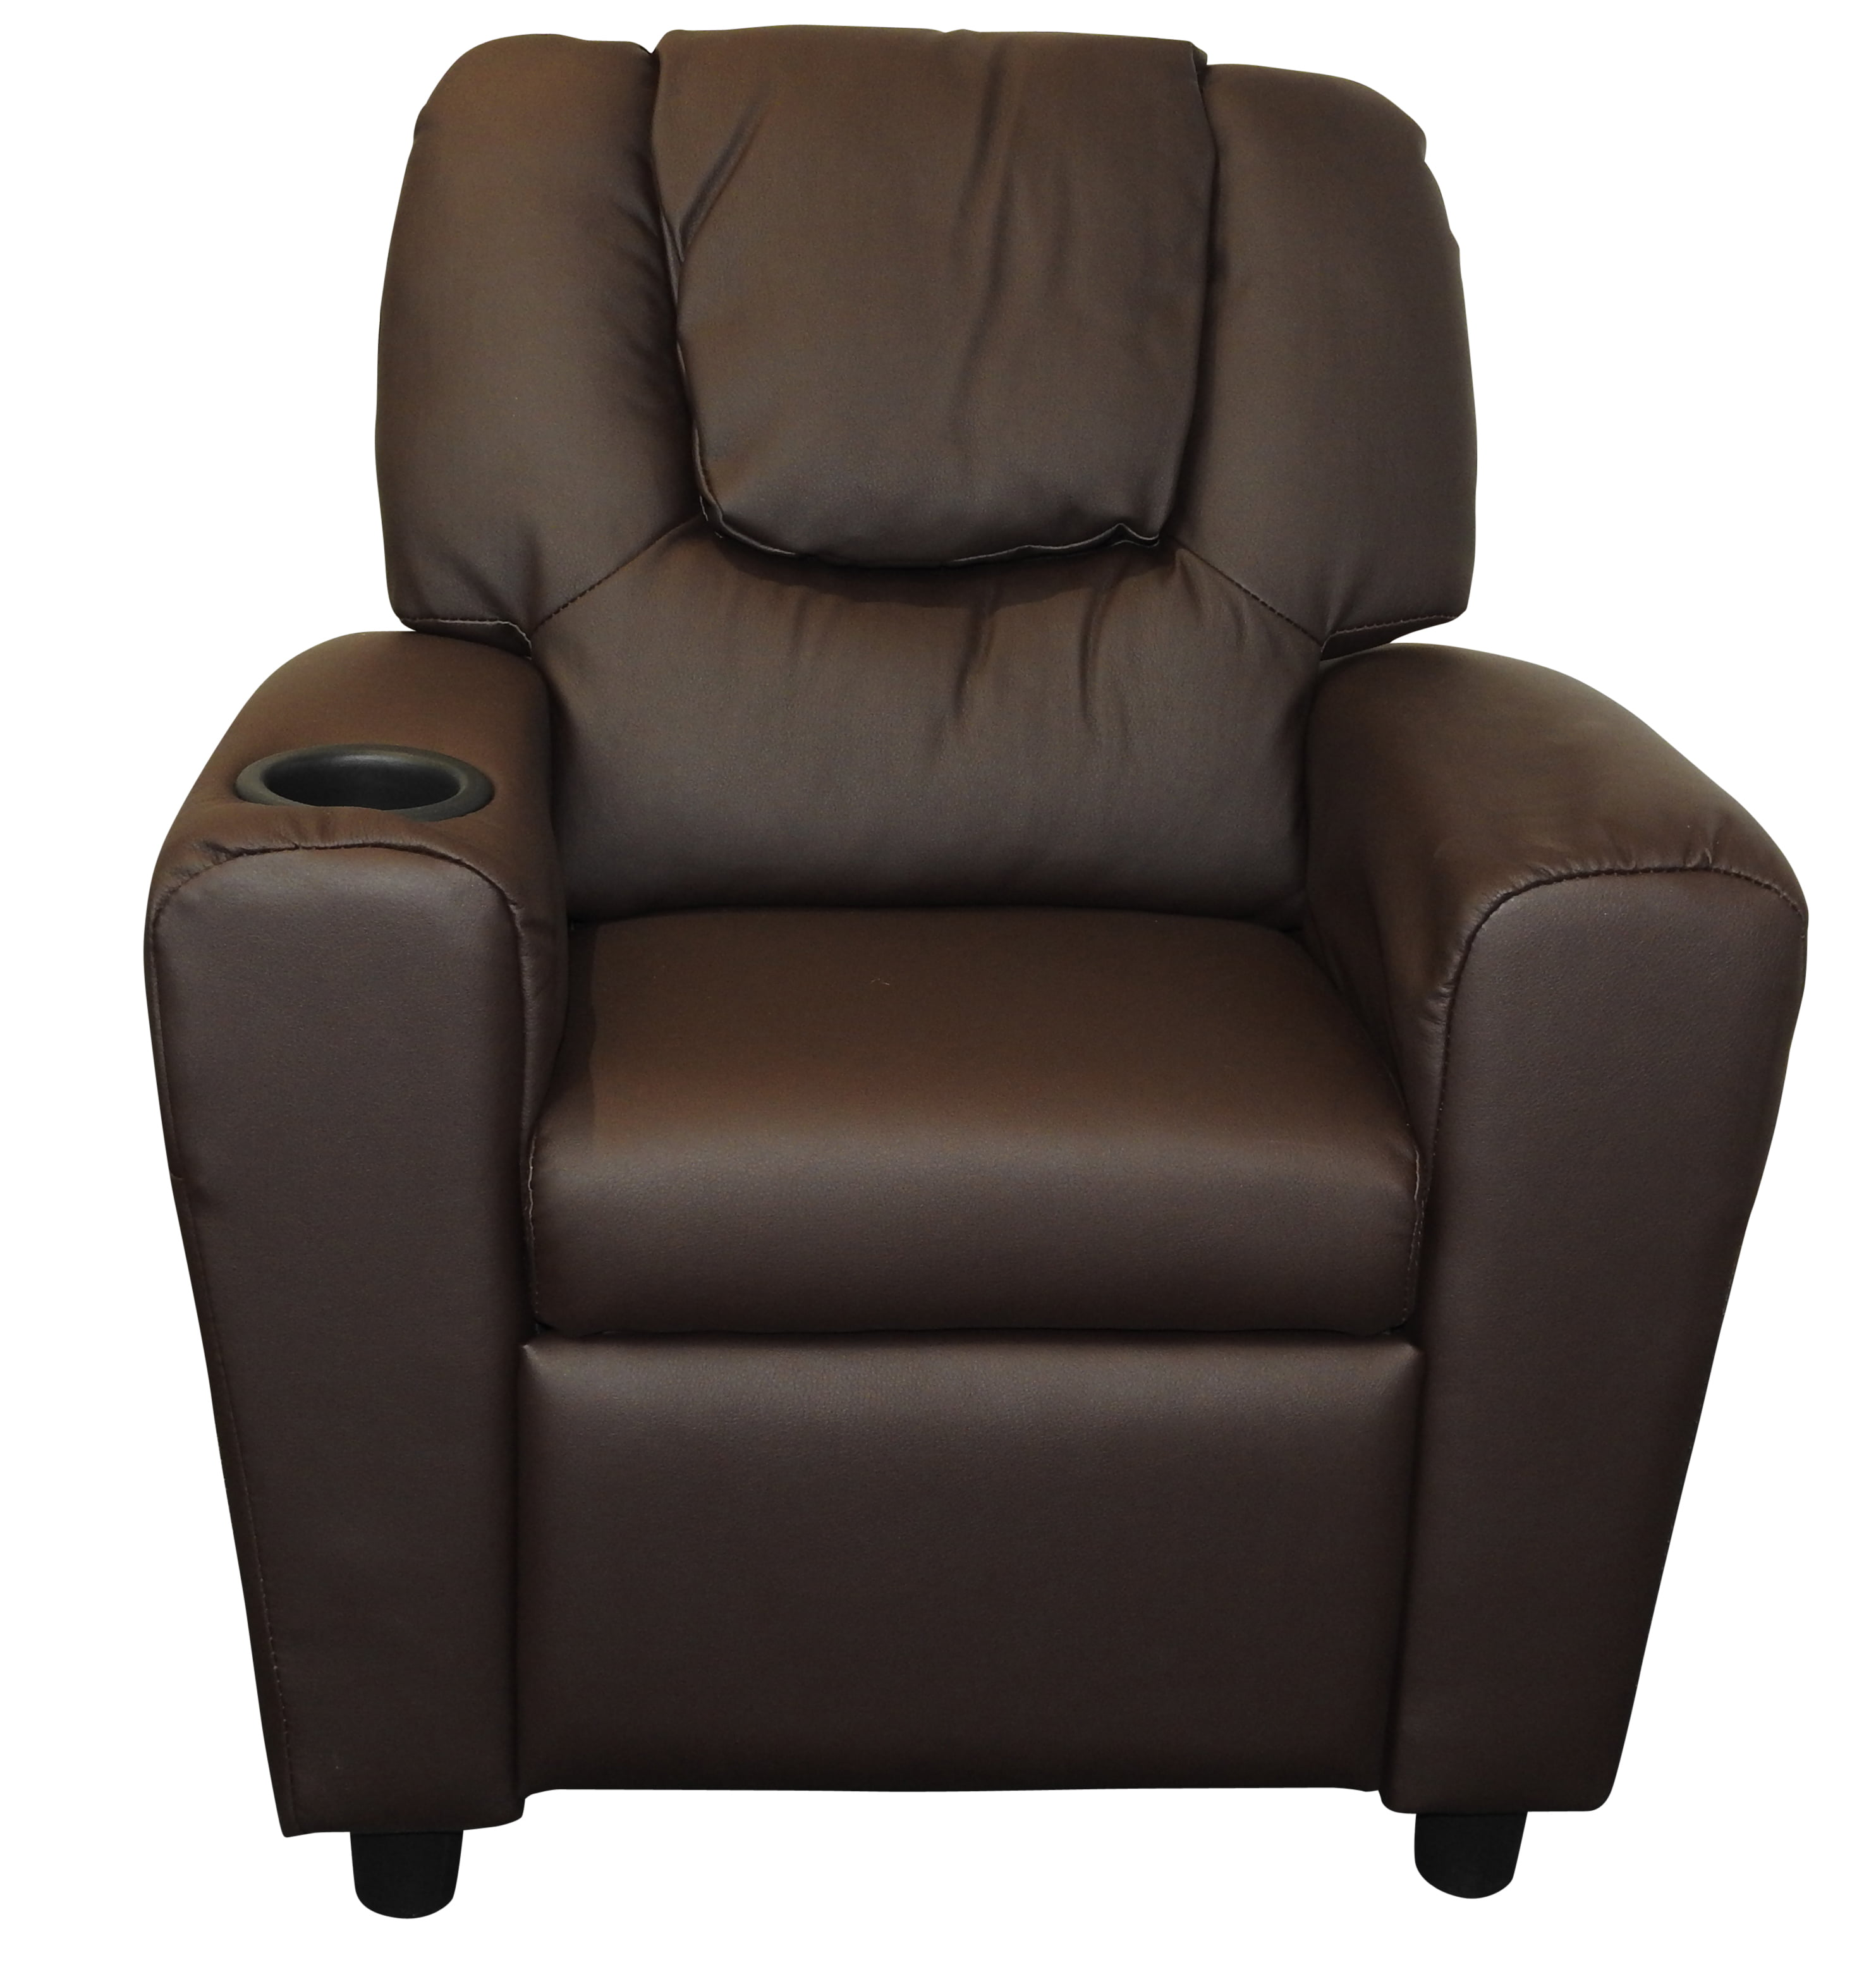 Tremendous Kids Recliner With Cup Holder Pabps2019 Chair Design Images Pabps2019Com